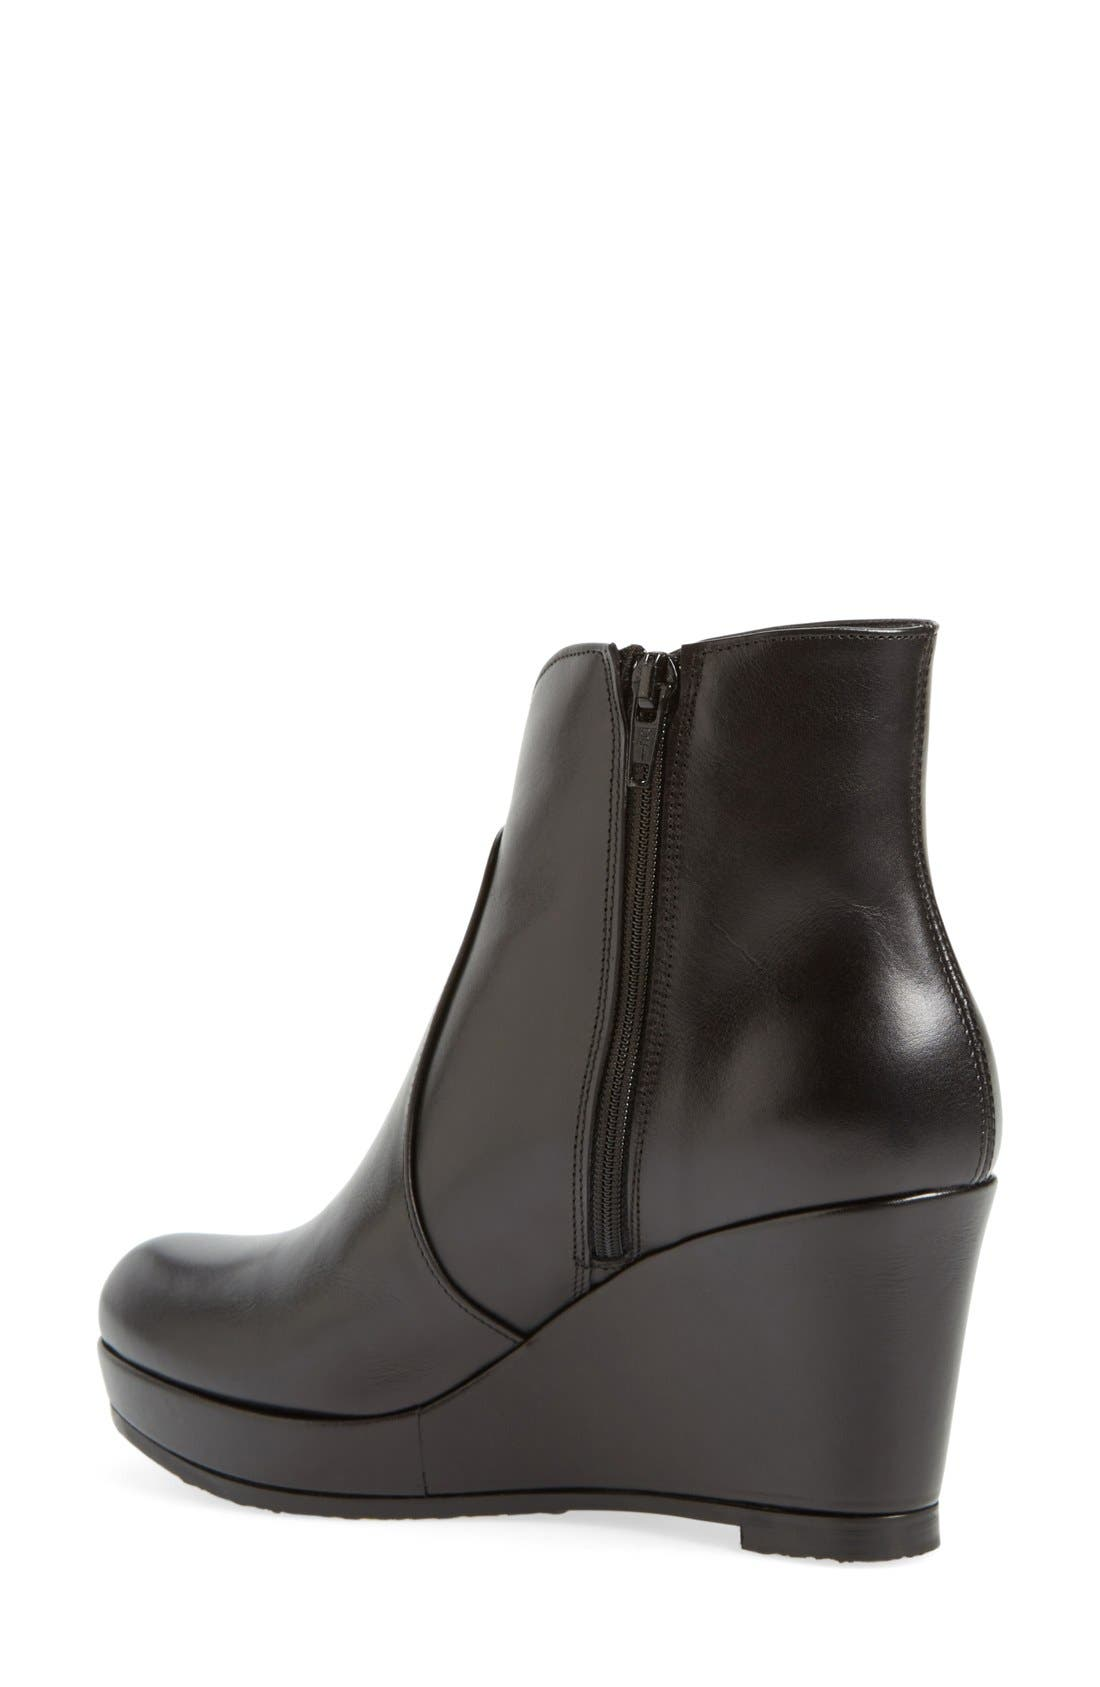 Alternate Image 2  - Cordani 'Laraby' Wedge Bootie